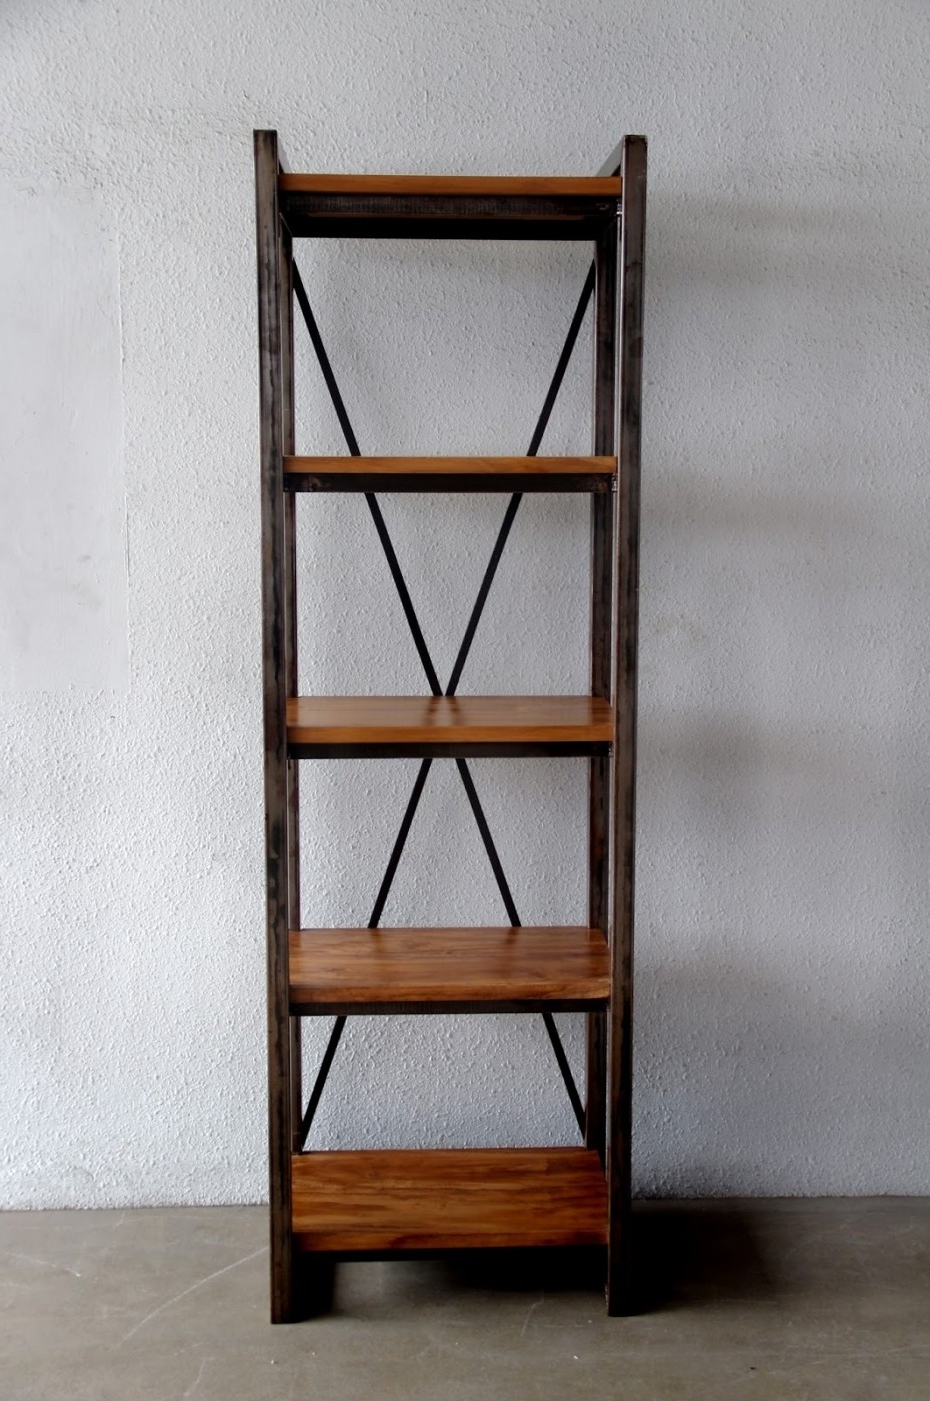 Free Standing Bookcases With Regard To Widely Used Shelf: Free Standing Wood Shelves Images. Home Storage (View 8 of 15)